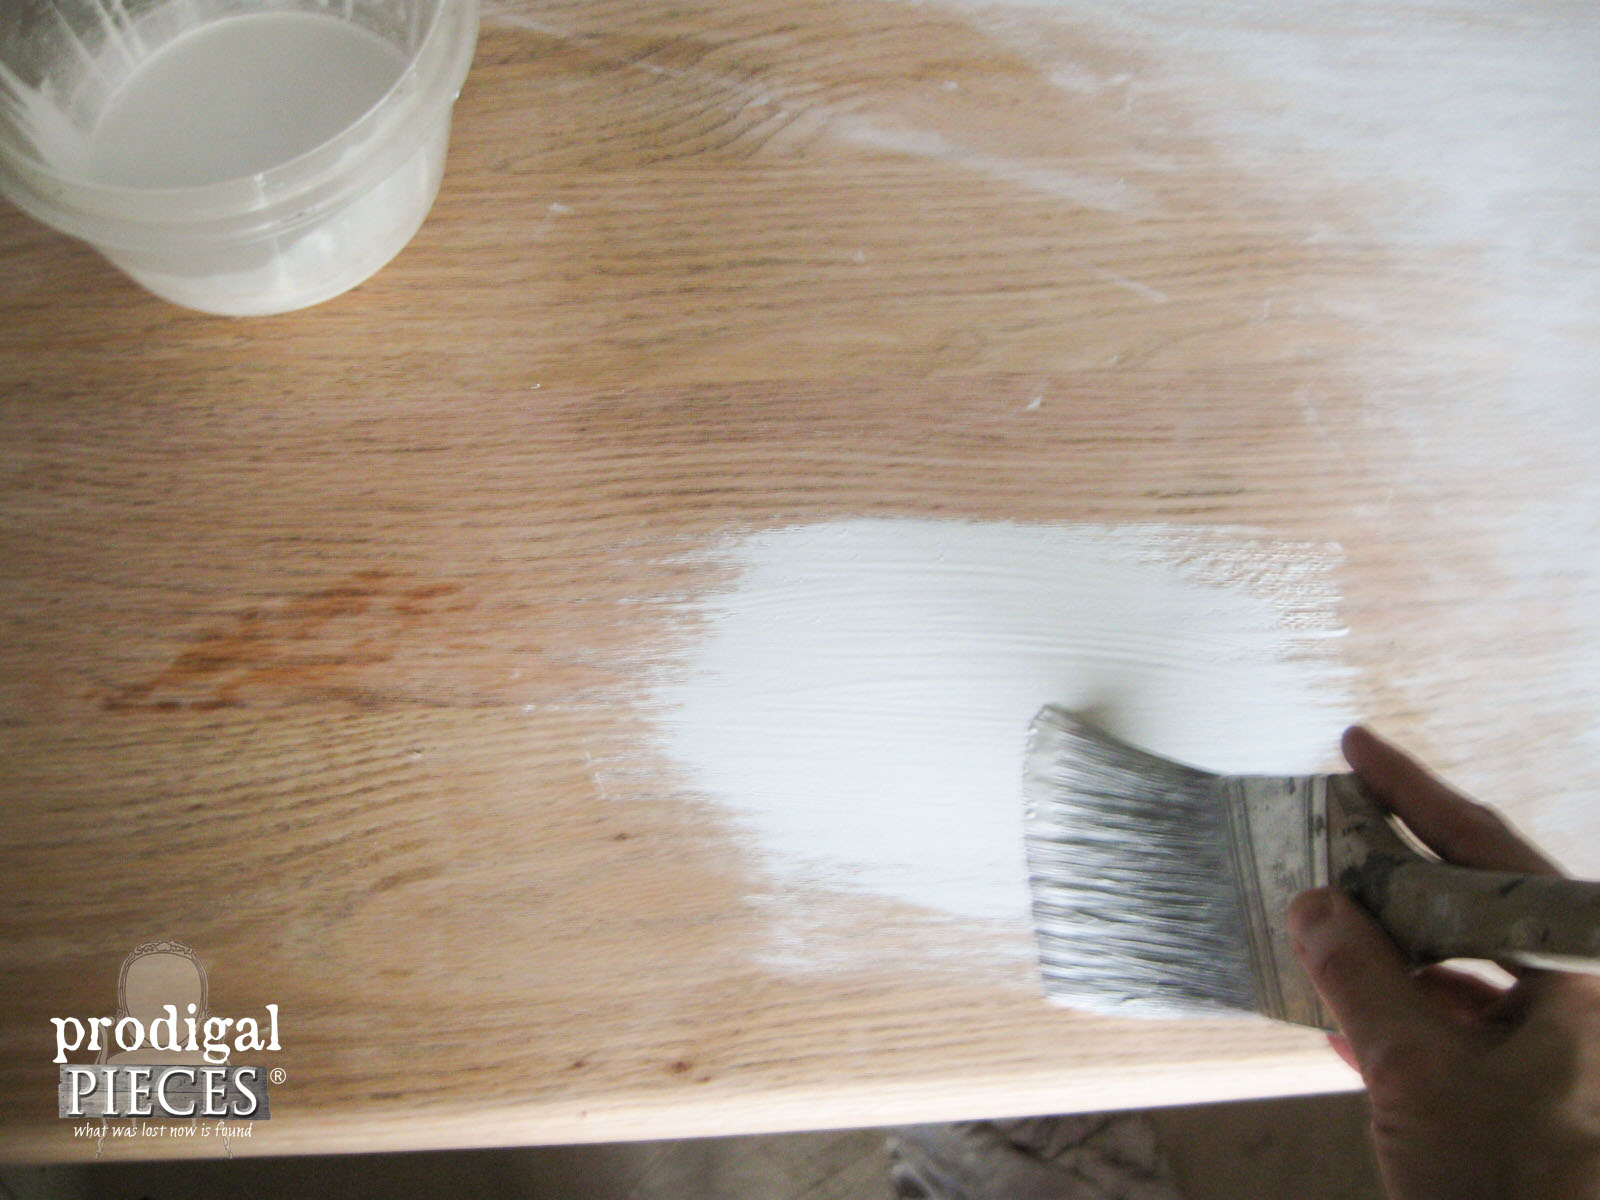 Whitewashing Farmhouse Table | Prodigal Pieces | www.prodigalpieces.com